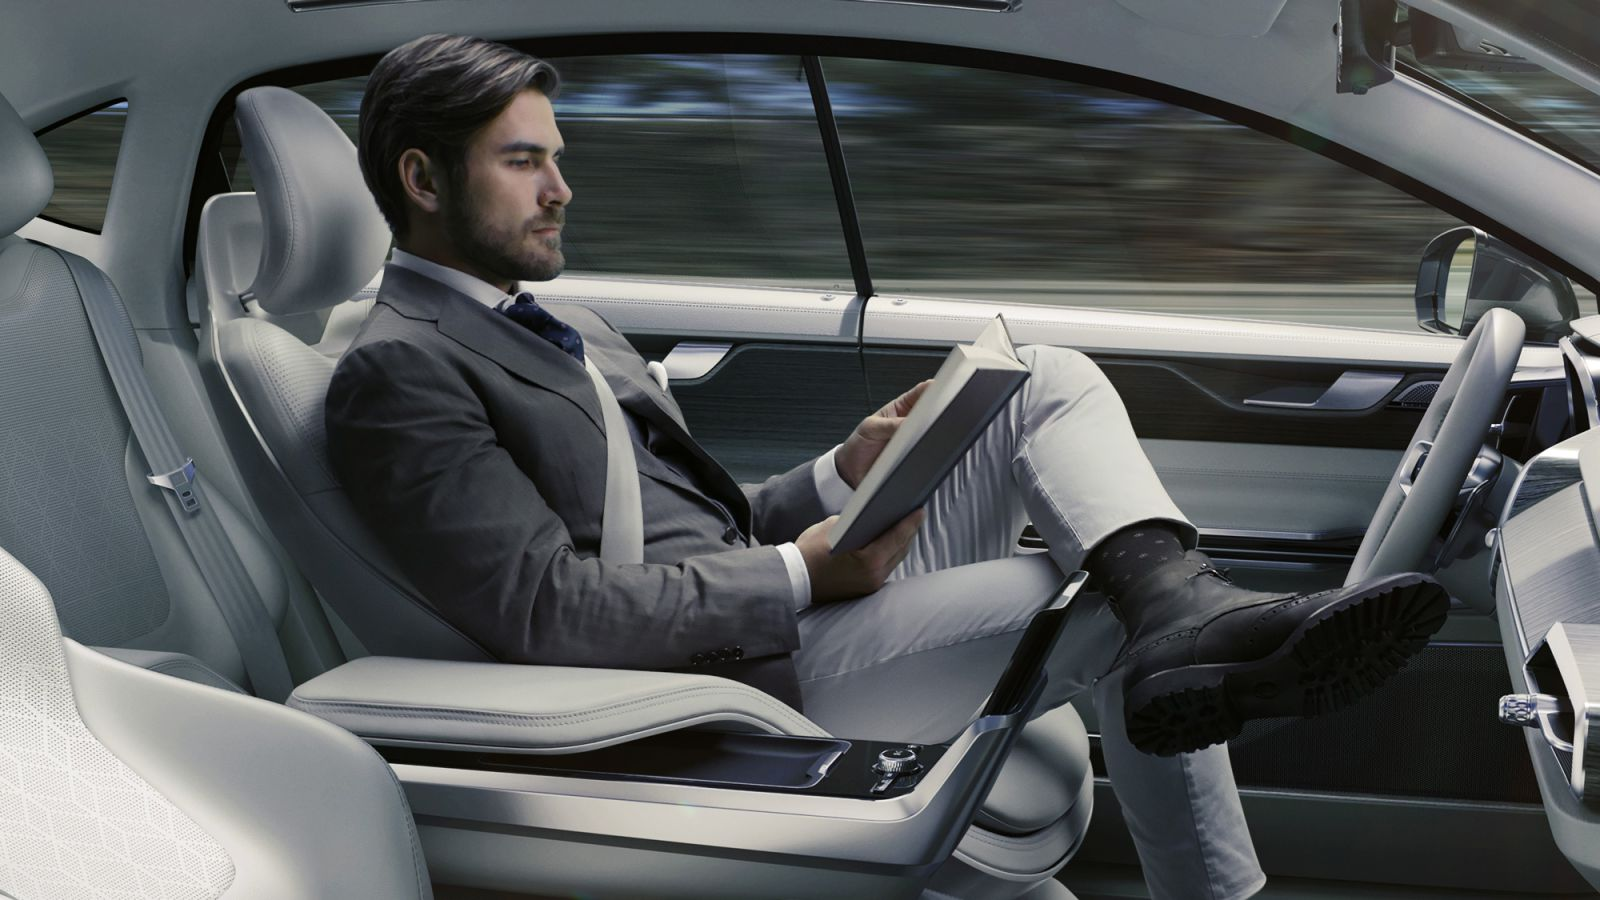 Are Self-Driving Vehicles going to lead to Mass Redundancies?